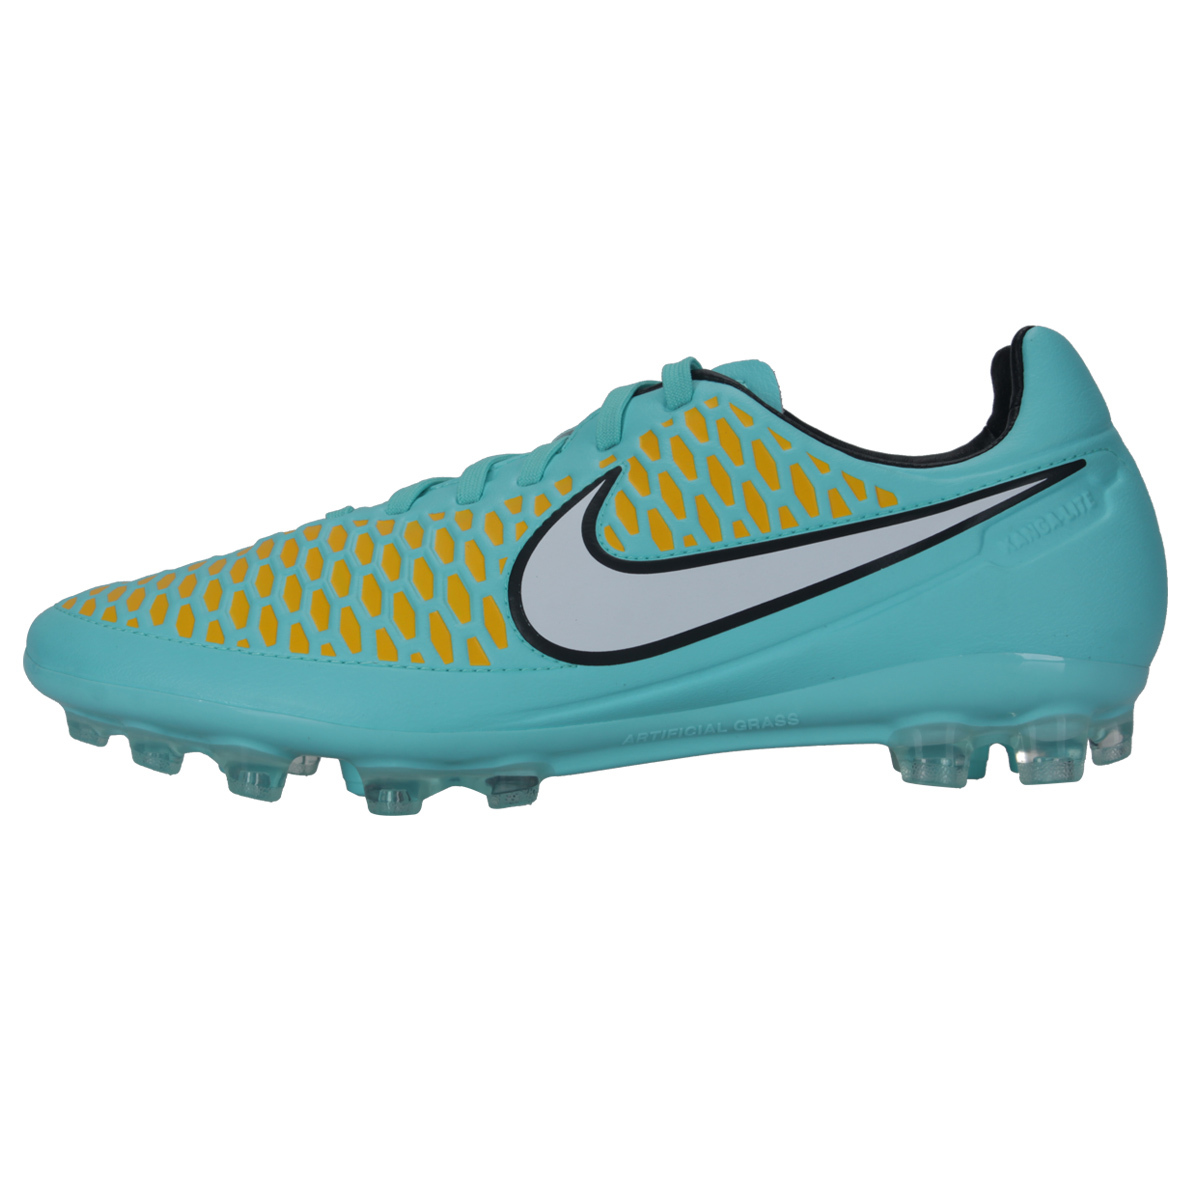 c6d13f5d7bfa Get Quotations · Authentic nike nike magista orden ag men s soccer shoes ghost  cards 651547-318 spot